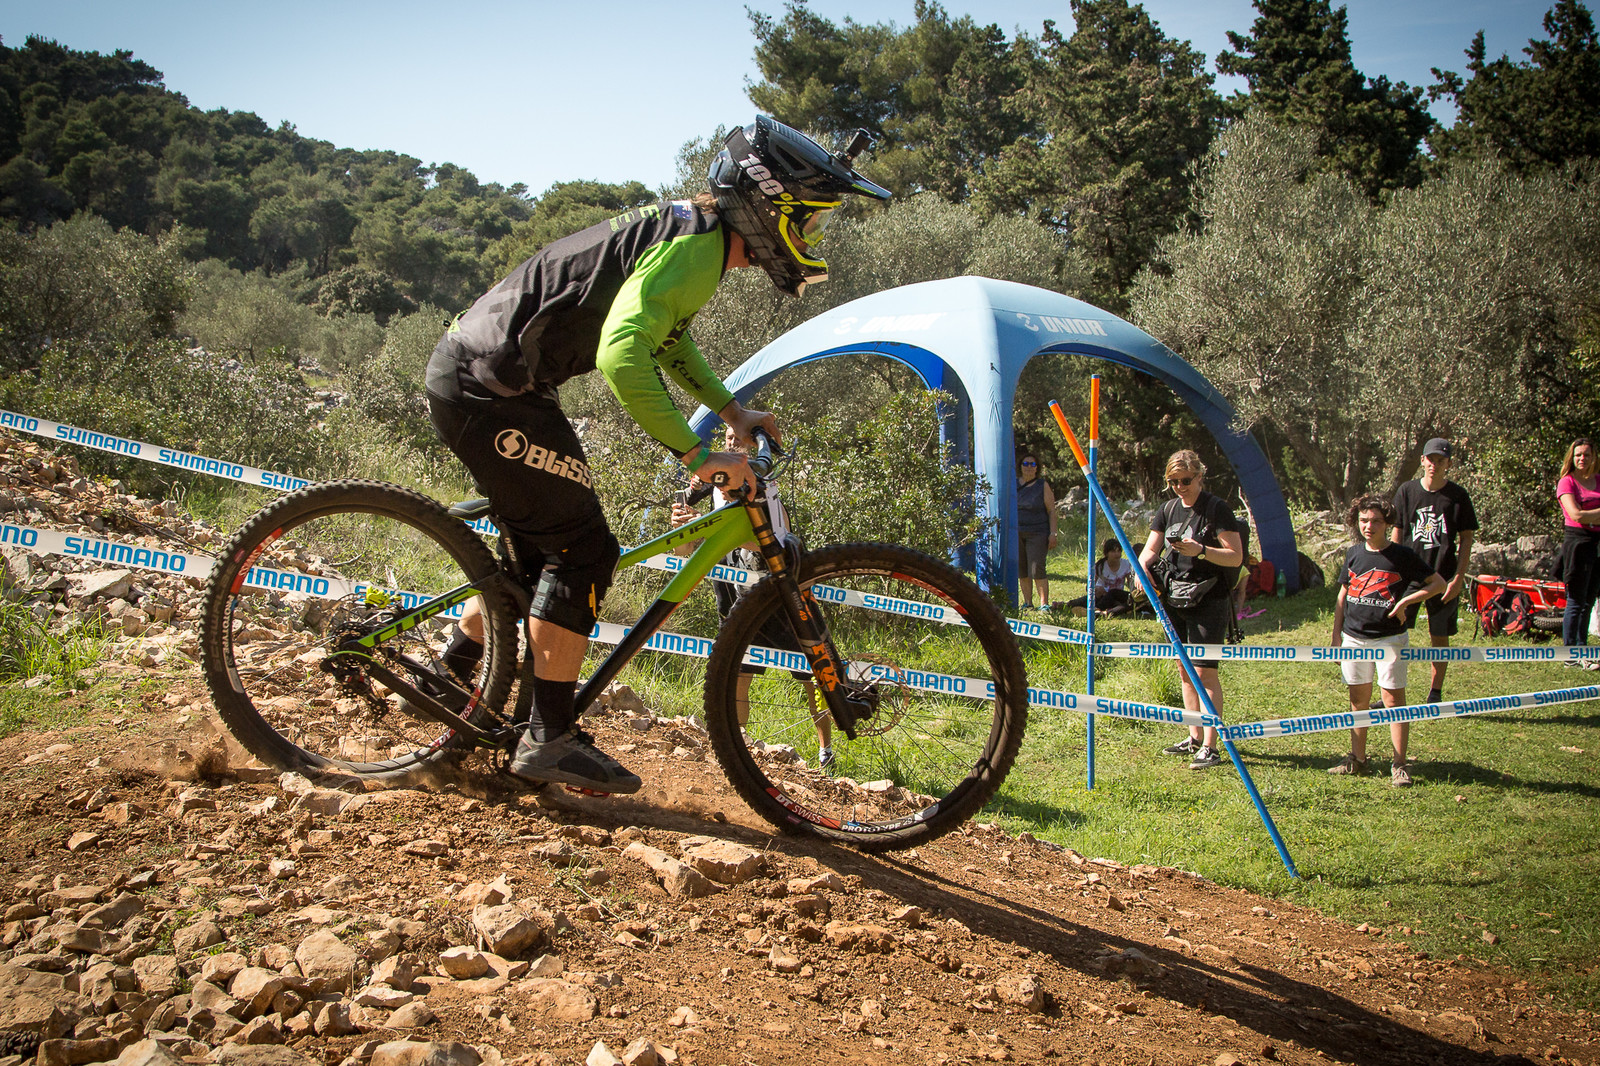 Matt Walker's Cube 29er at Max Squish - G-Out Project - Croatia World Cup DH - Mountain Biking Pictures - Vital MTB